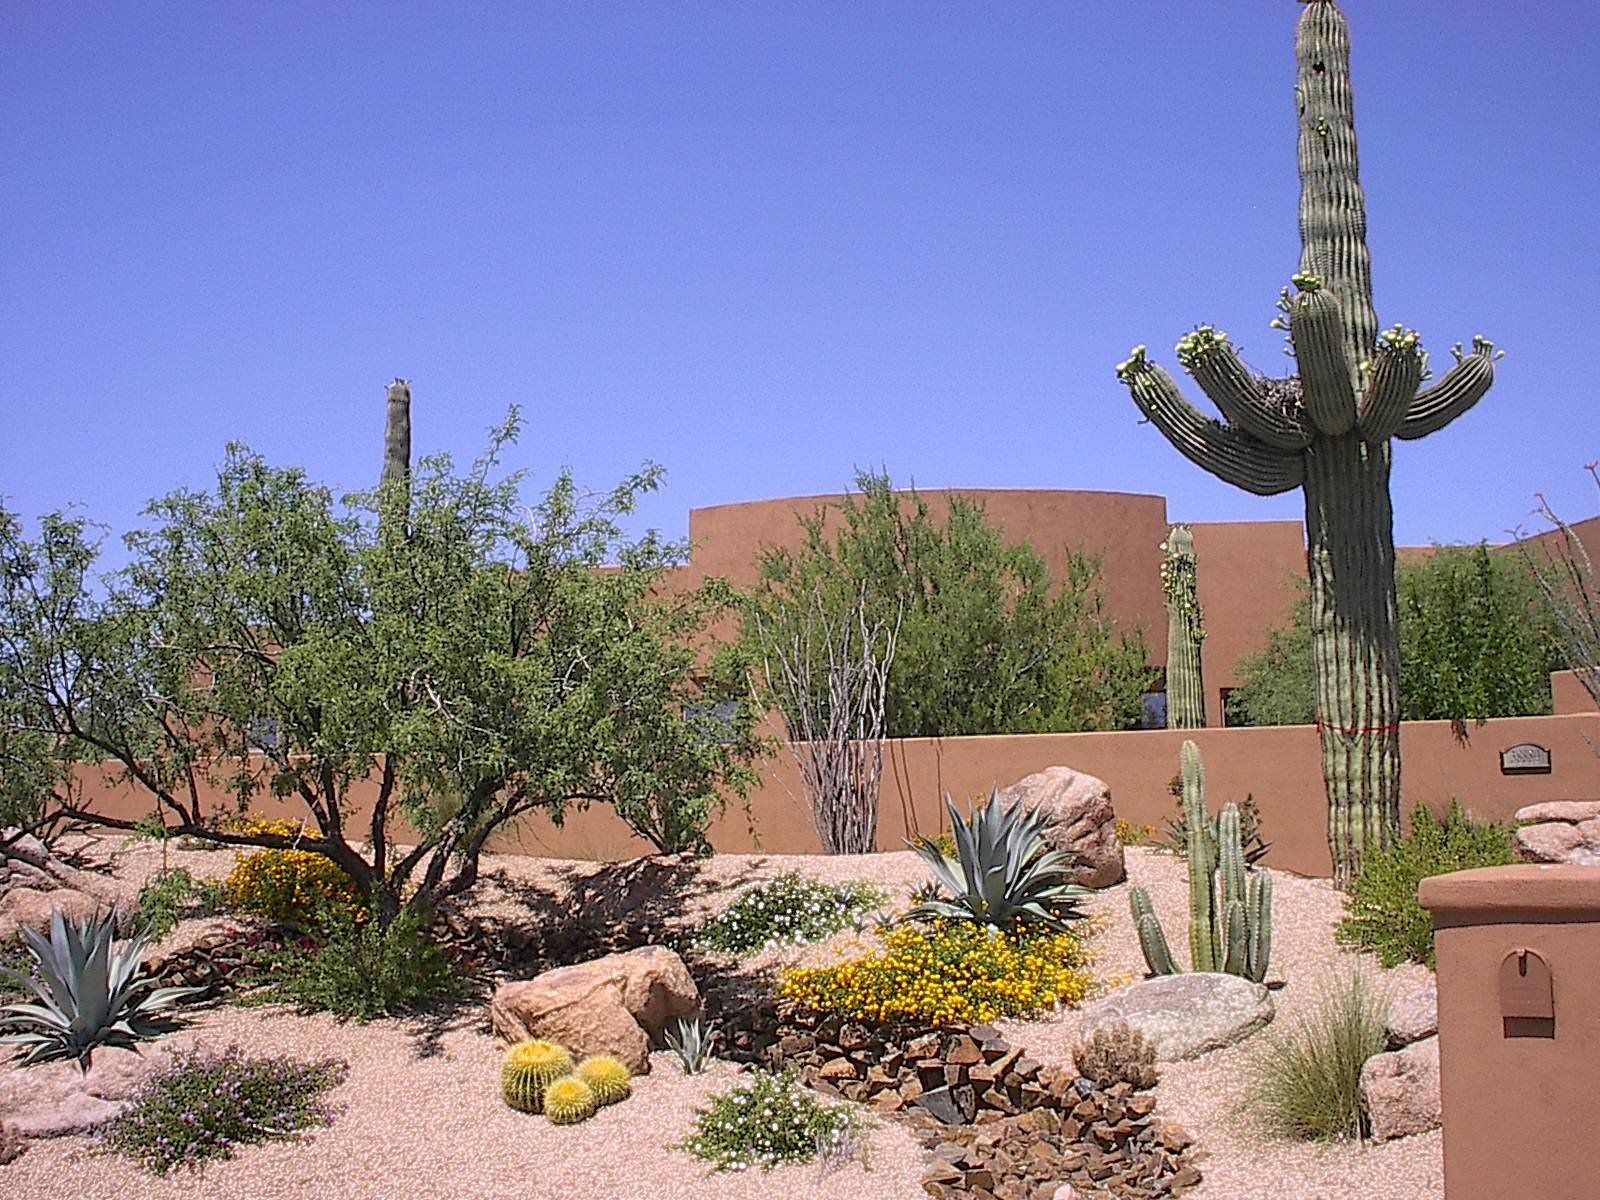 Desert Landscaping Ideas | Landscape Creations of Arizona ... on Small Backyard Desert Landscaping Ideas id=19624